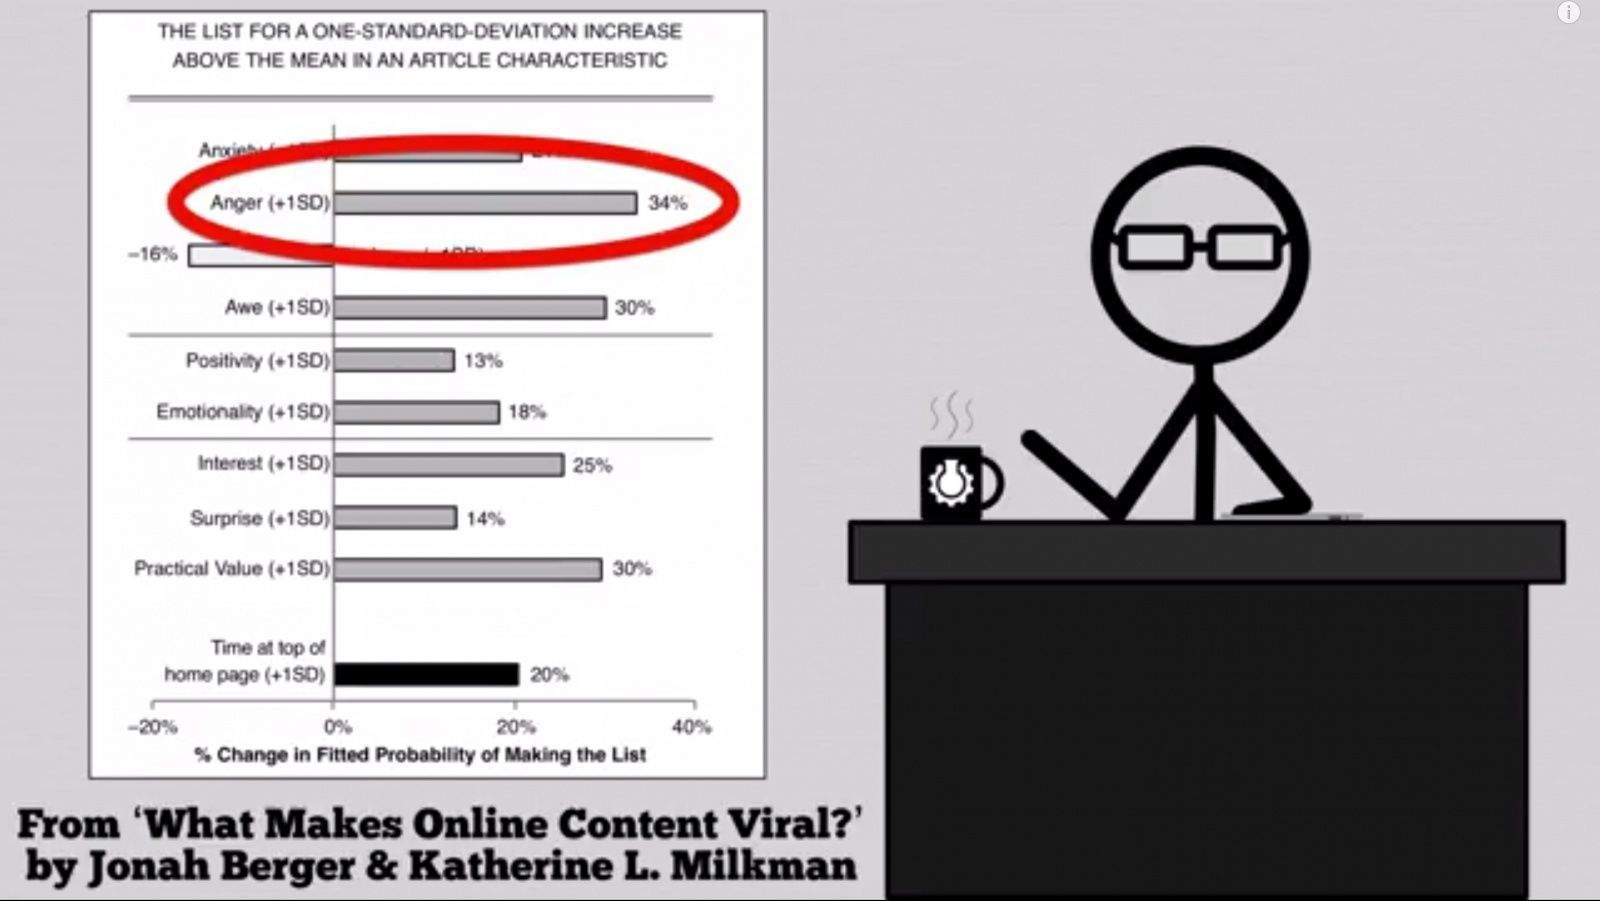 Need your online content to go viral? Get your opponents angry. Photo: CGP Grey/YouTube